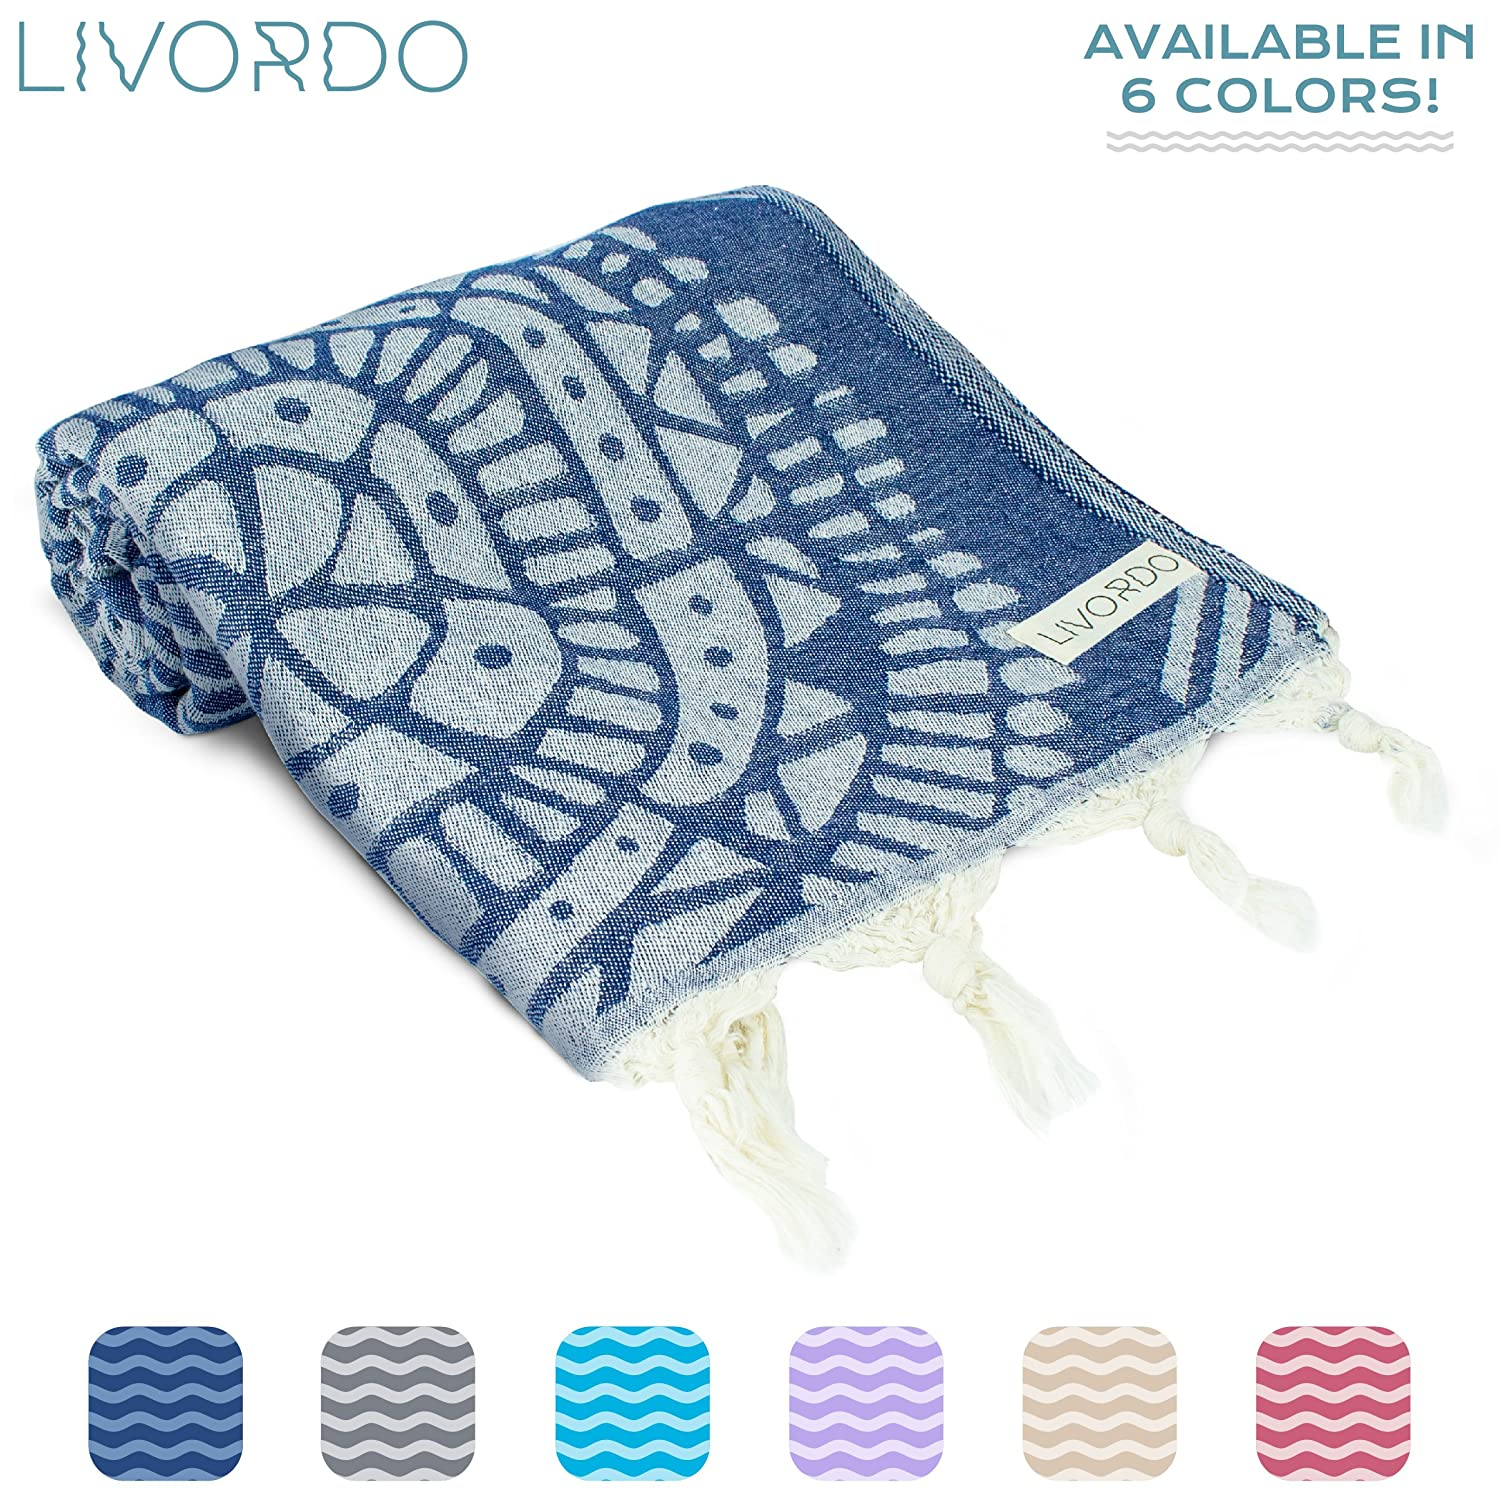 Livordo Turkish Beach Towel Soft, Absorbent 100% Cotton Made in Turkey Quick Dry Lightweight Bath Sheet, Sarong, Pareo, Wrap, Pestemal, Scarf, Spa, Yoga, Gym, Hiking, Camping (NavyBlue)